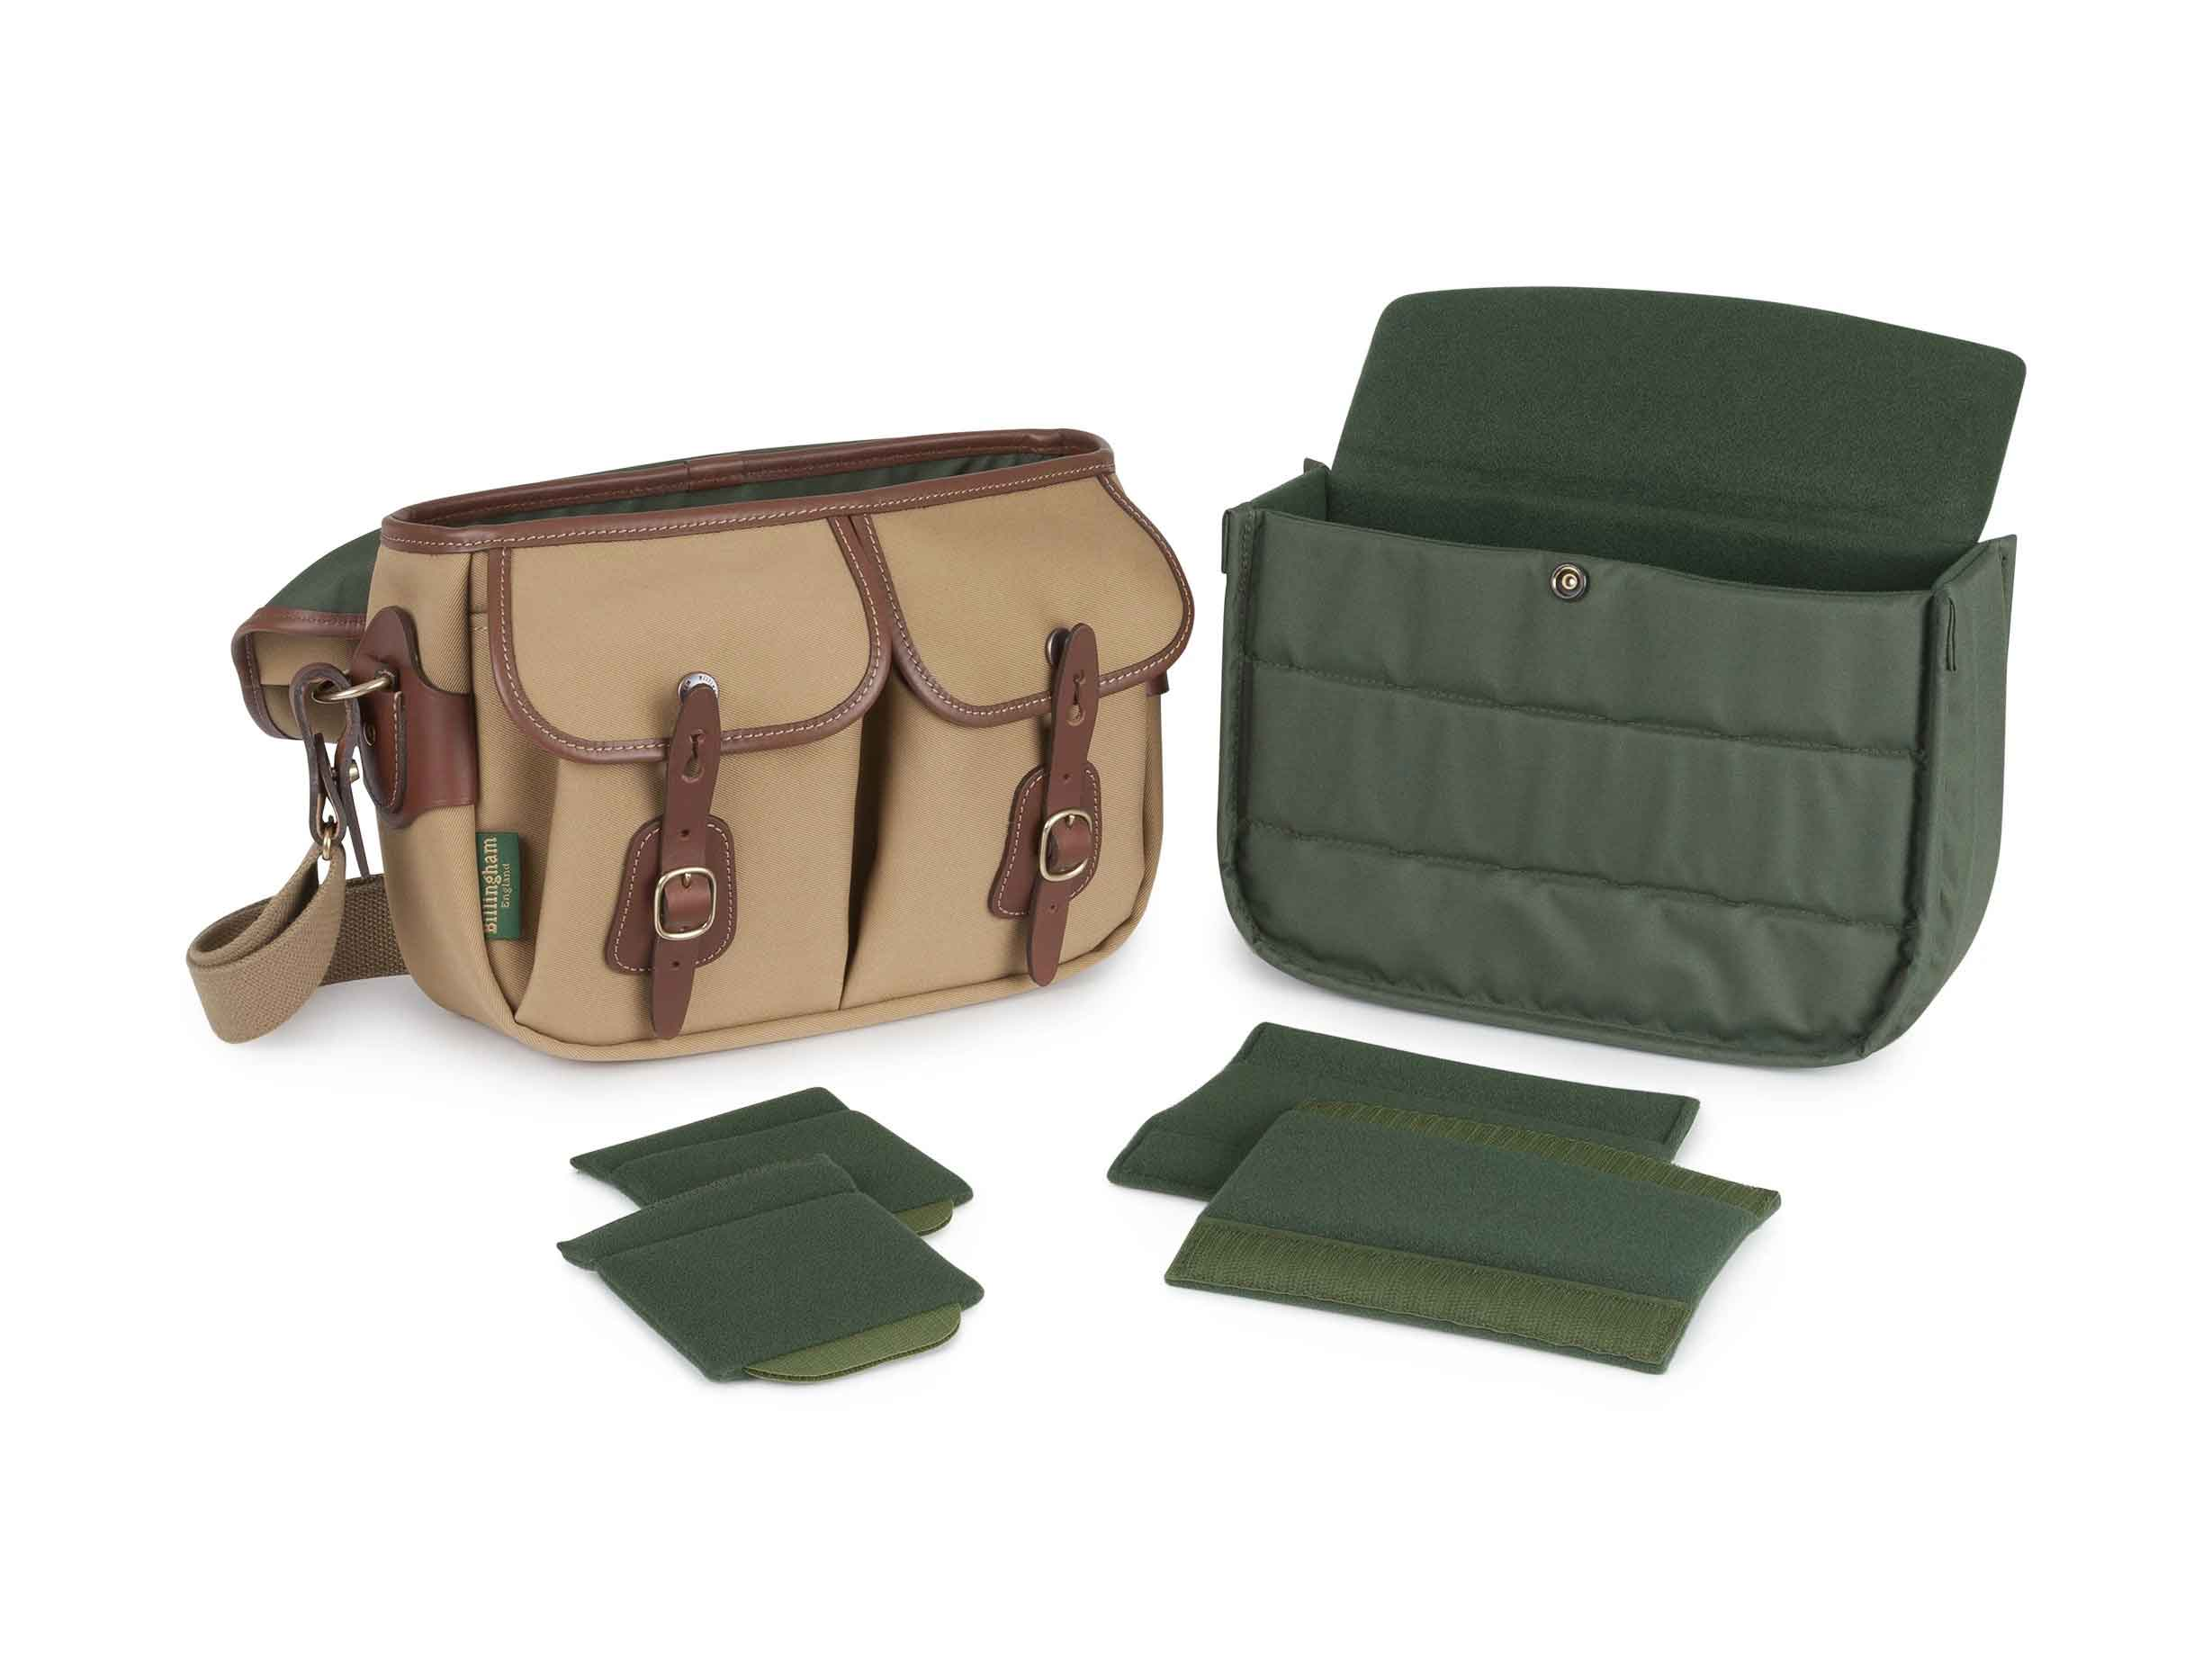 Billingham_Hadley_Small_Pro_-_REMOVEABLE_INSERT_10_Crop_4000x@2x